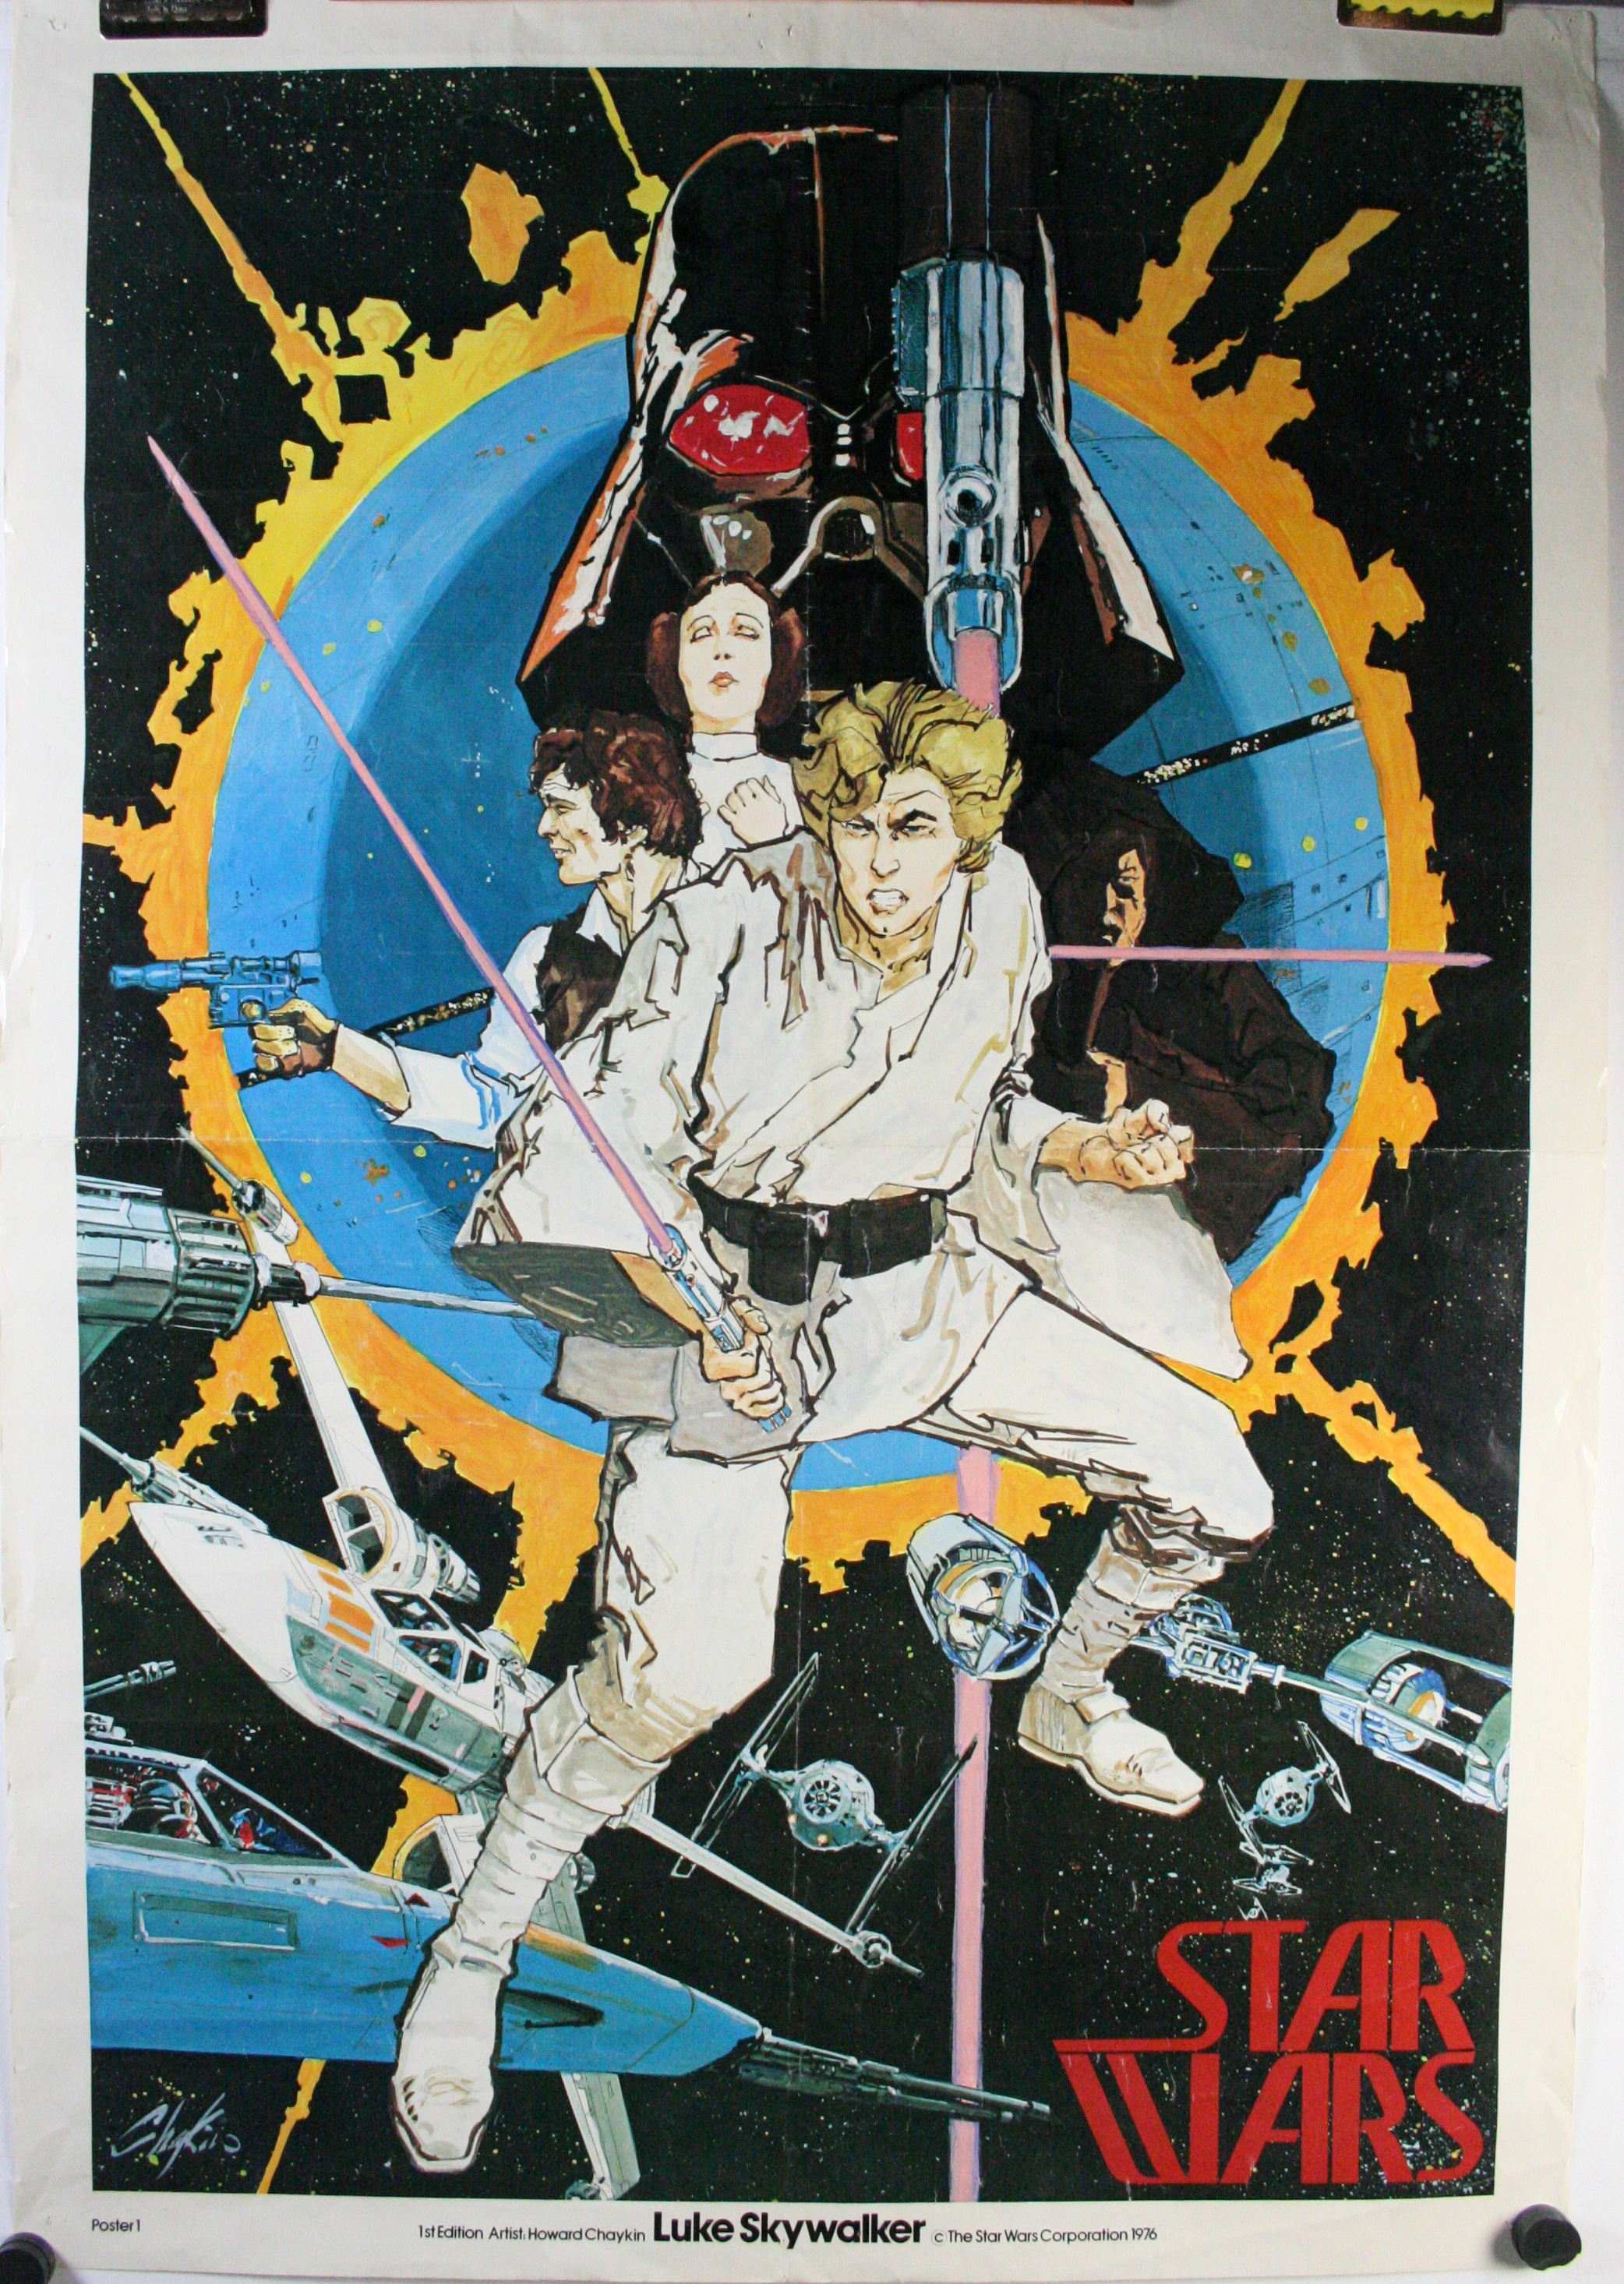 Star wars chaykin original comic con movie poster 1 for sale for Poster prints for sale